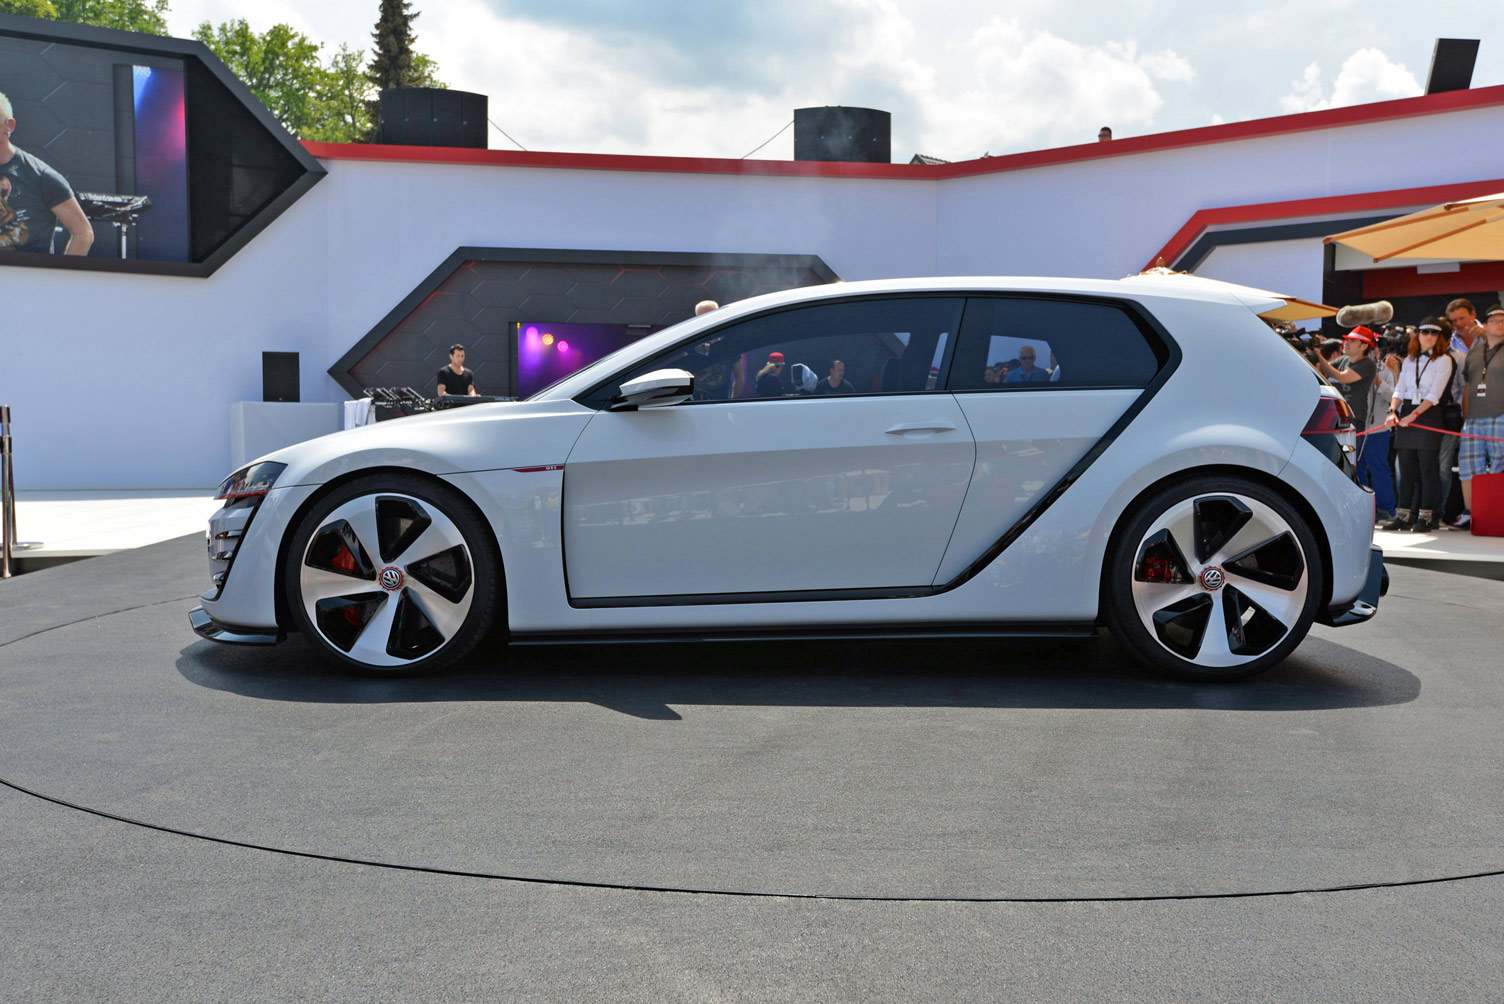 volkswagen-design-vision-gti-worthersee-020